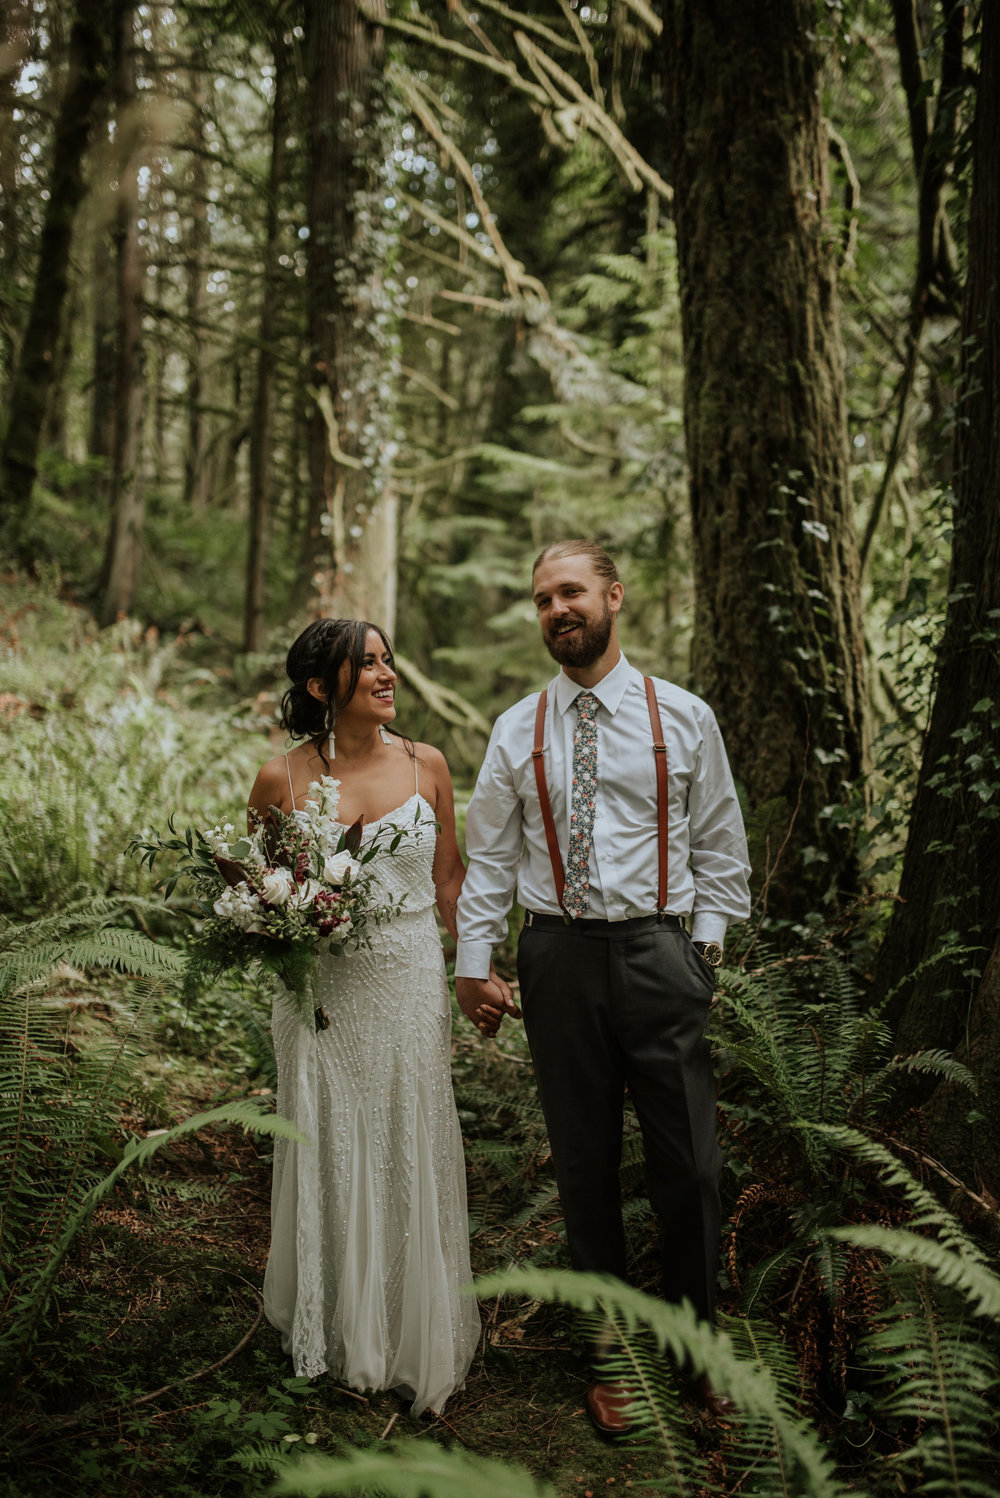 intimate-boho-campfire-wedding-shangri-la-on-the-green-seattle-wedding-photographer-caitlyn-nikula-photography-77.jpg